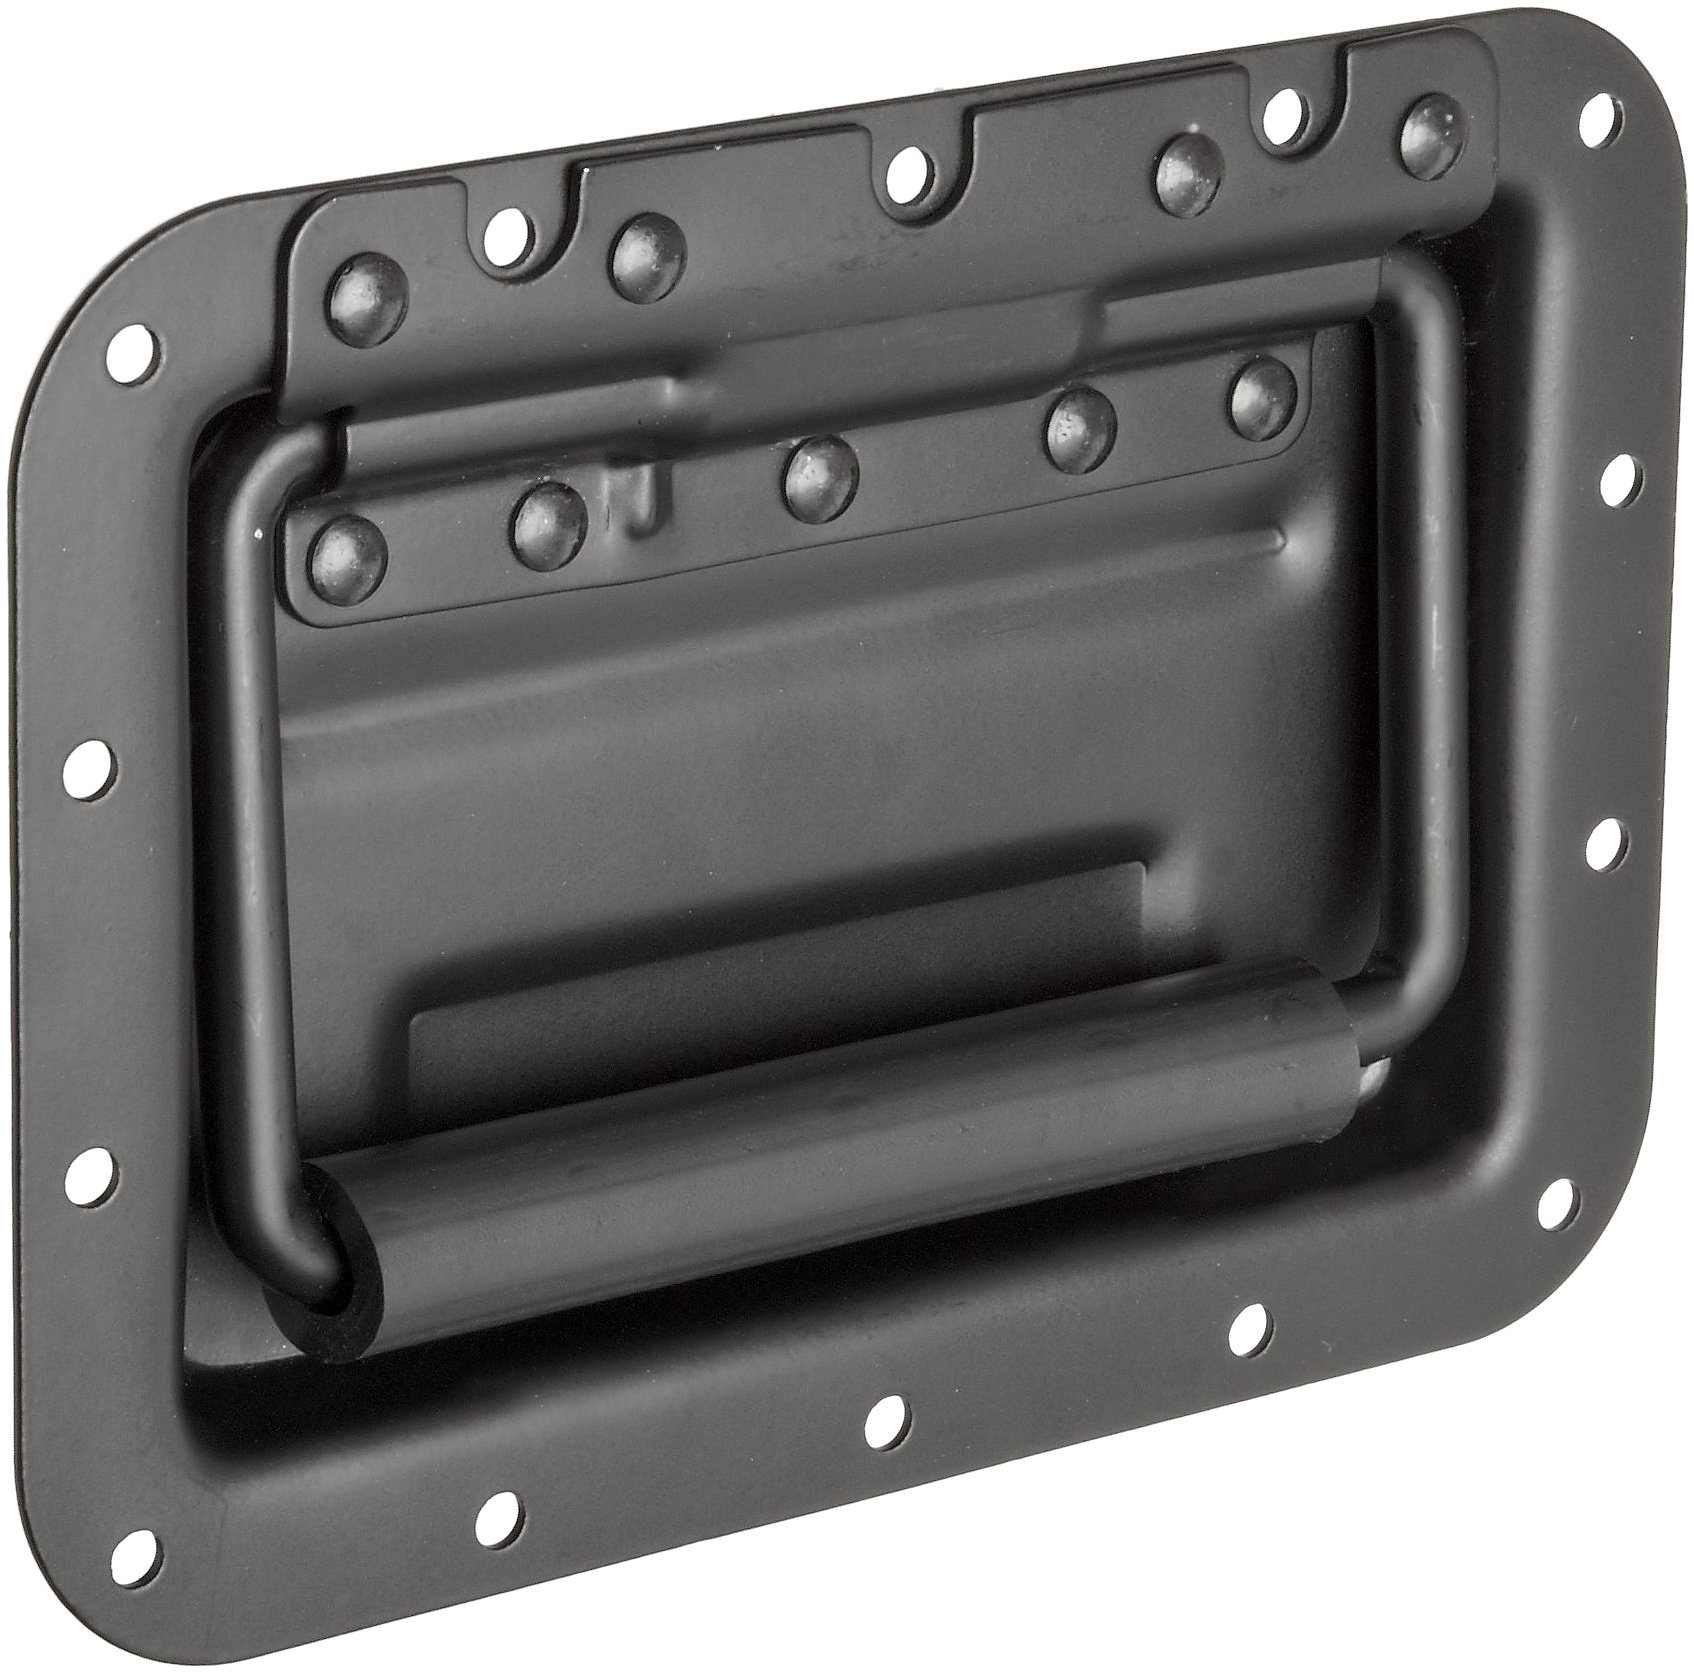 Monroe Steel Recessed Pull Handle, Spring Loaded Rectangular Grip, Dull Black Finish, 7'' Mounting Hole Center to Center, 21/32'' Projection, Black Color (Pack of 1)